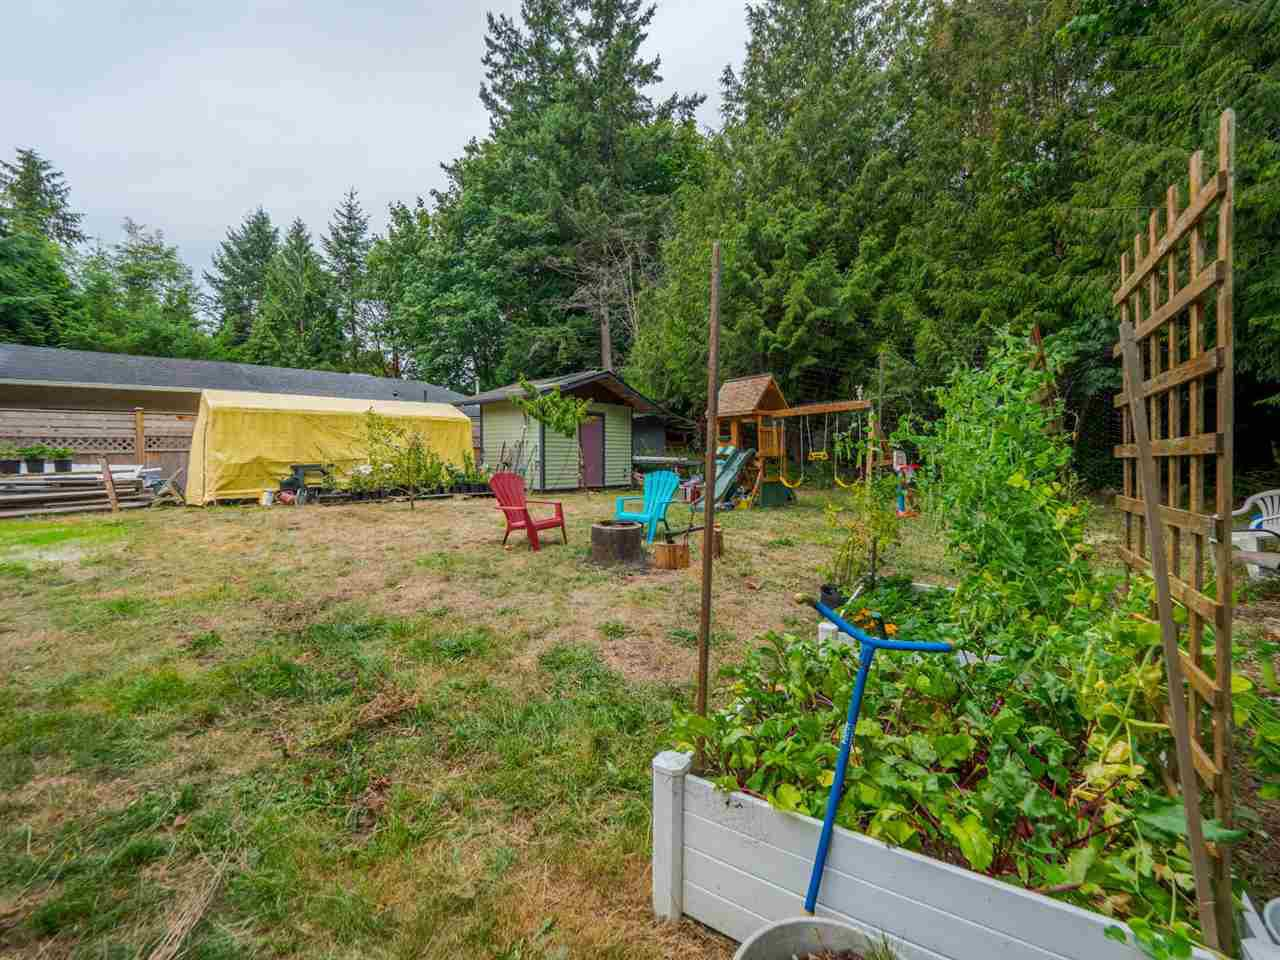 Photo 15: Photos: 1625 BLOWER Road in Sechelt: Sechelt District House for sale (Sunshine Coast)  : MLS®# R2394268